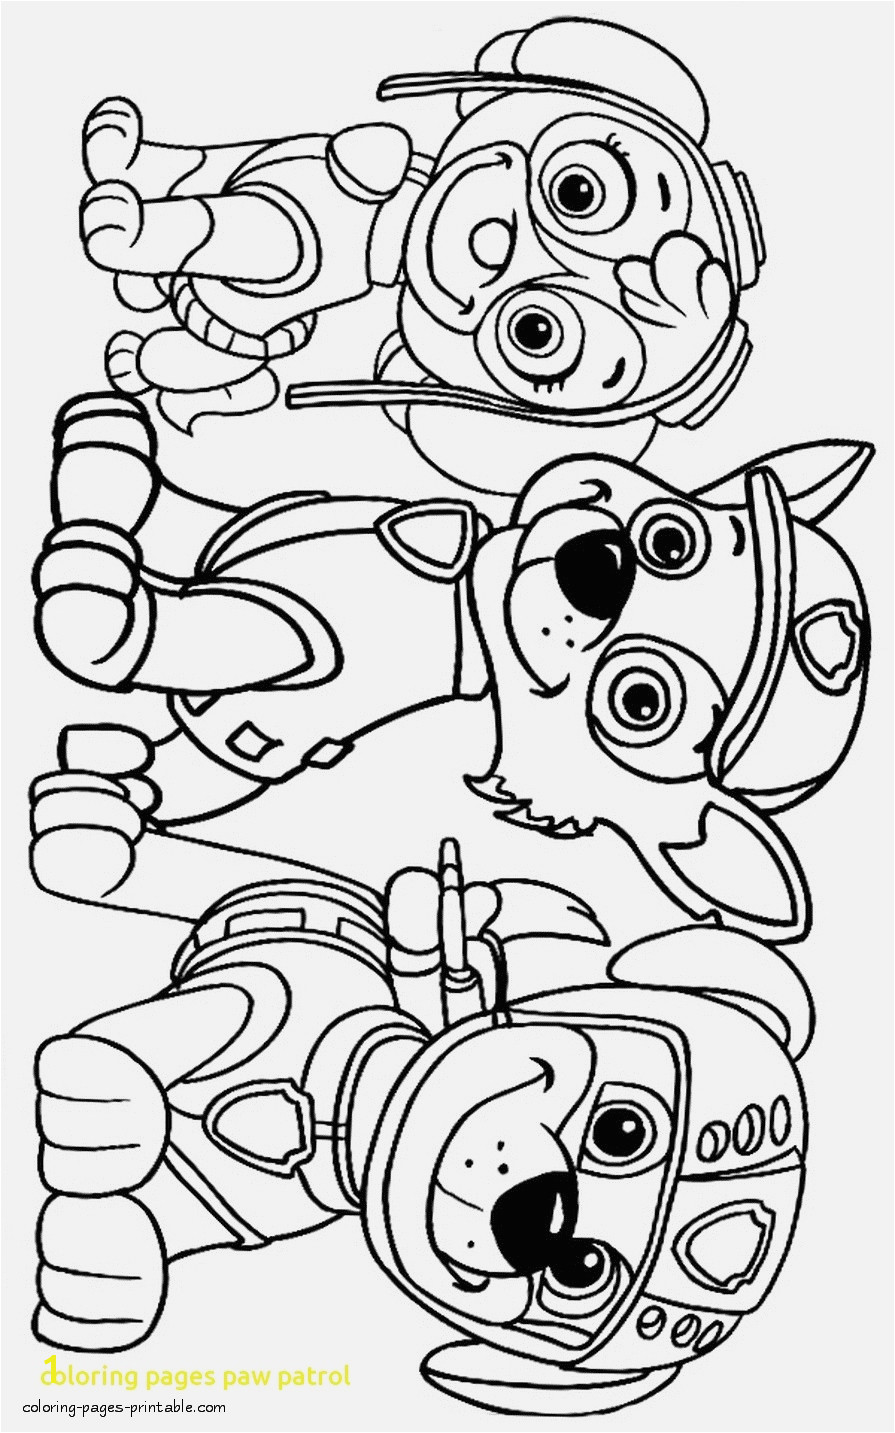 Free Paw Patrol Coloring Pages the First Ever Custom 48 Best Paw Patrol Coloring Games Stock